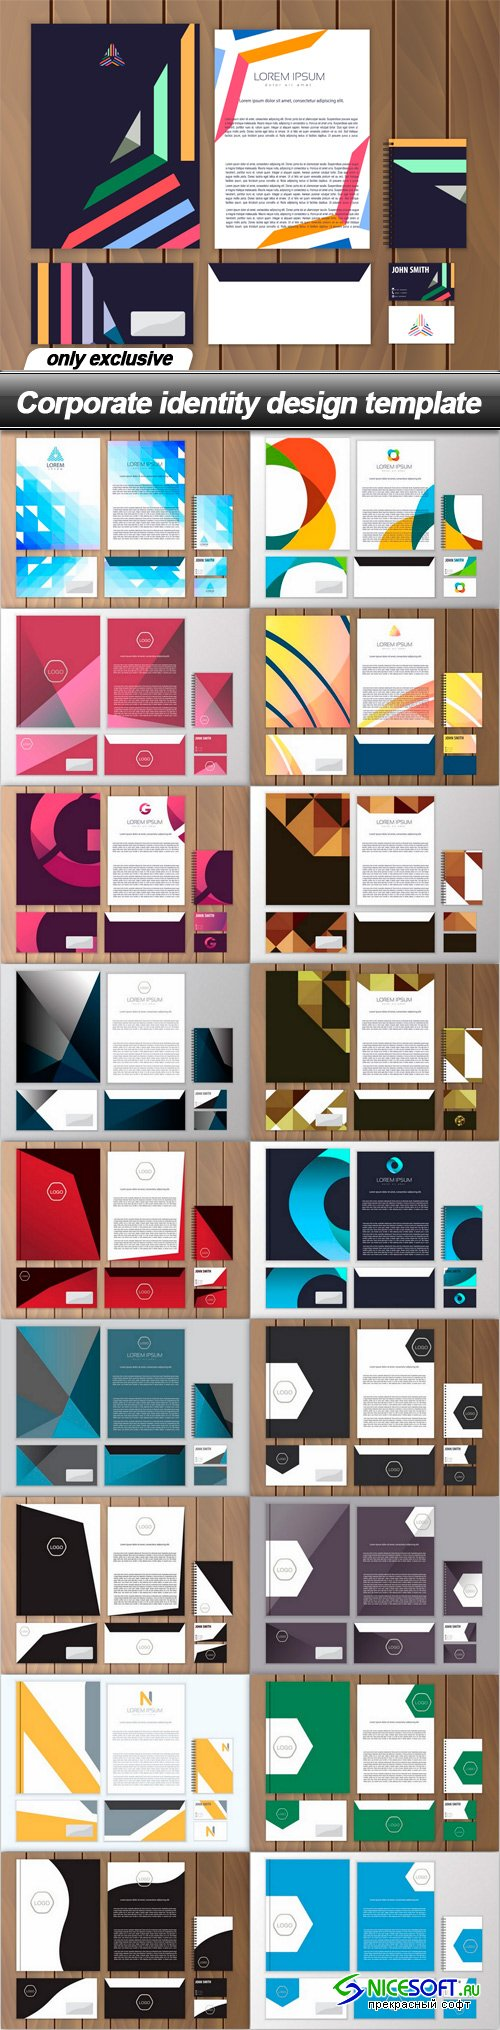 Corporate identity design template